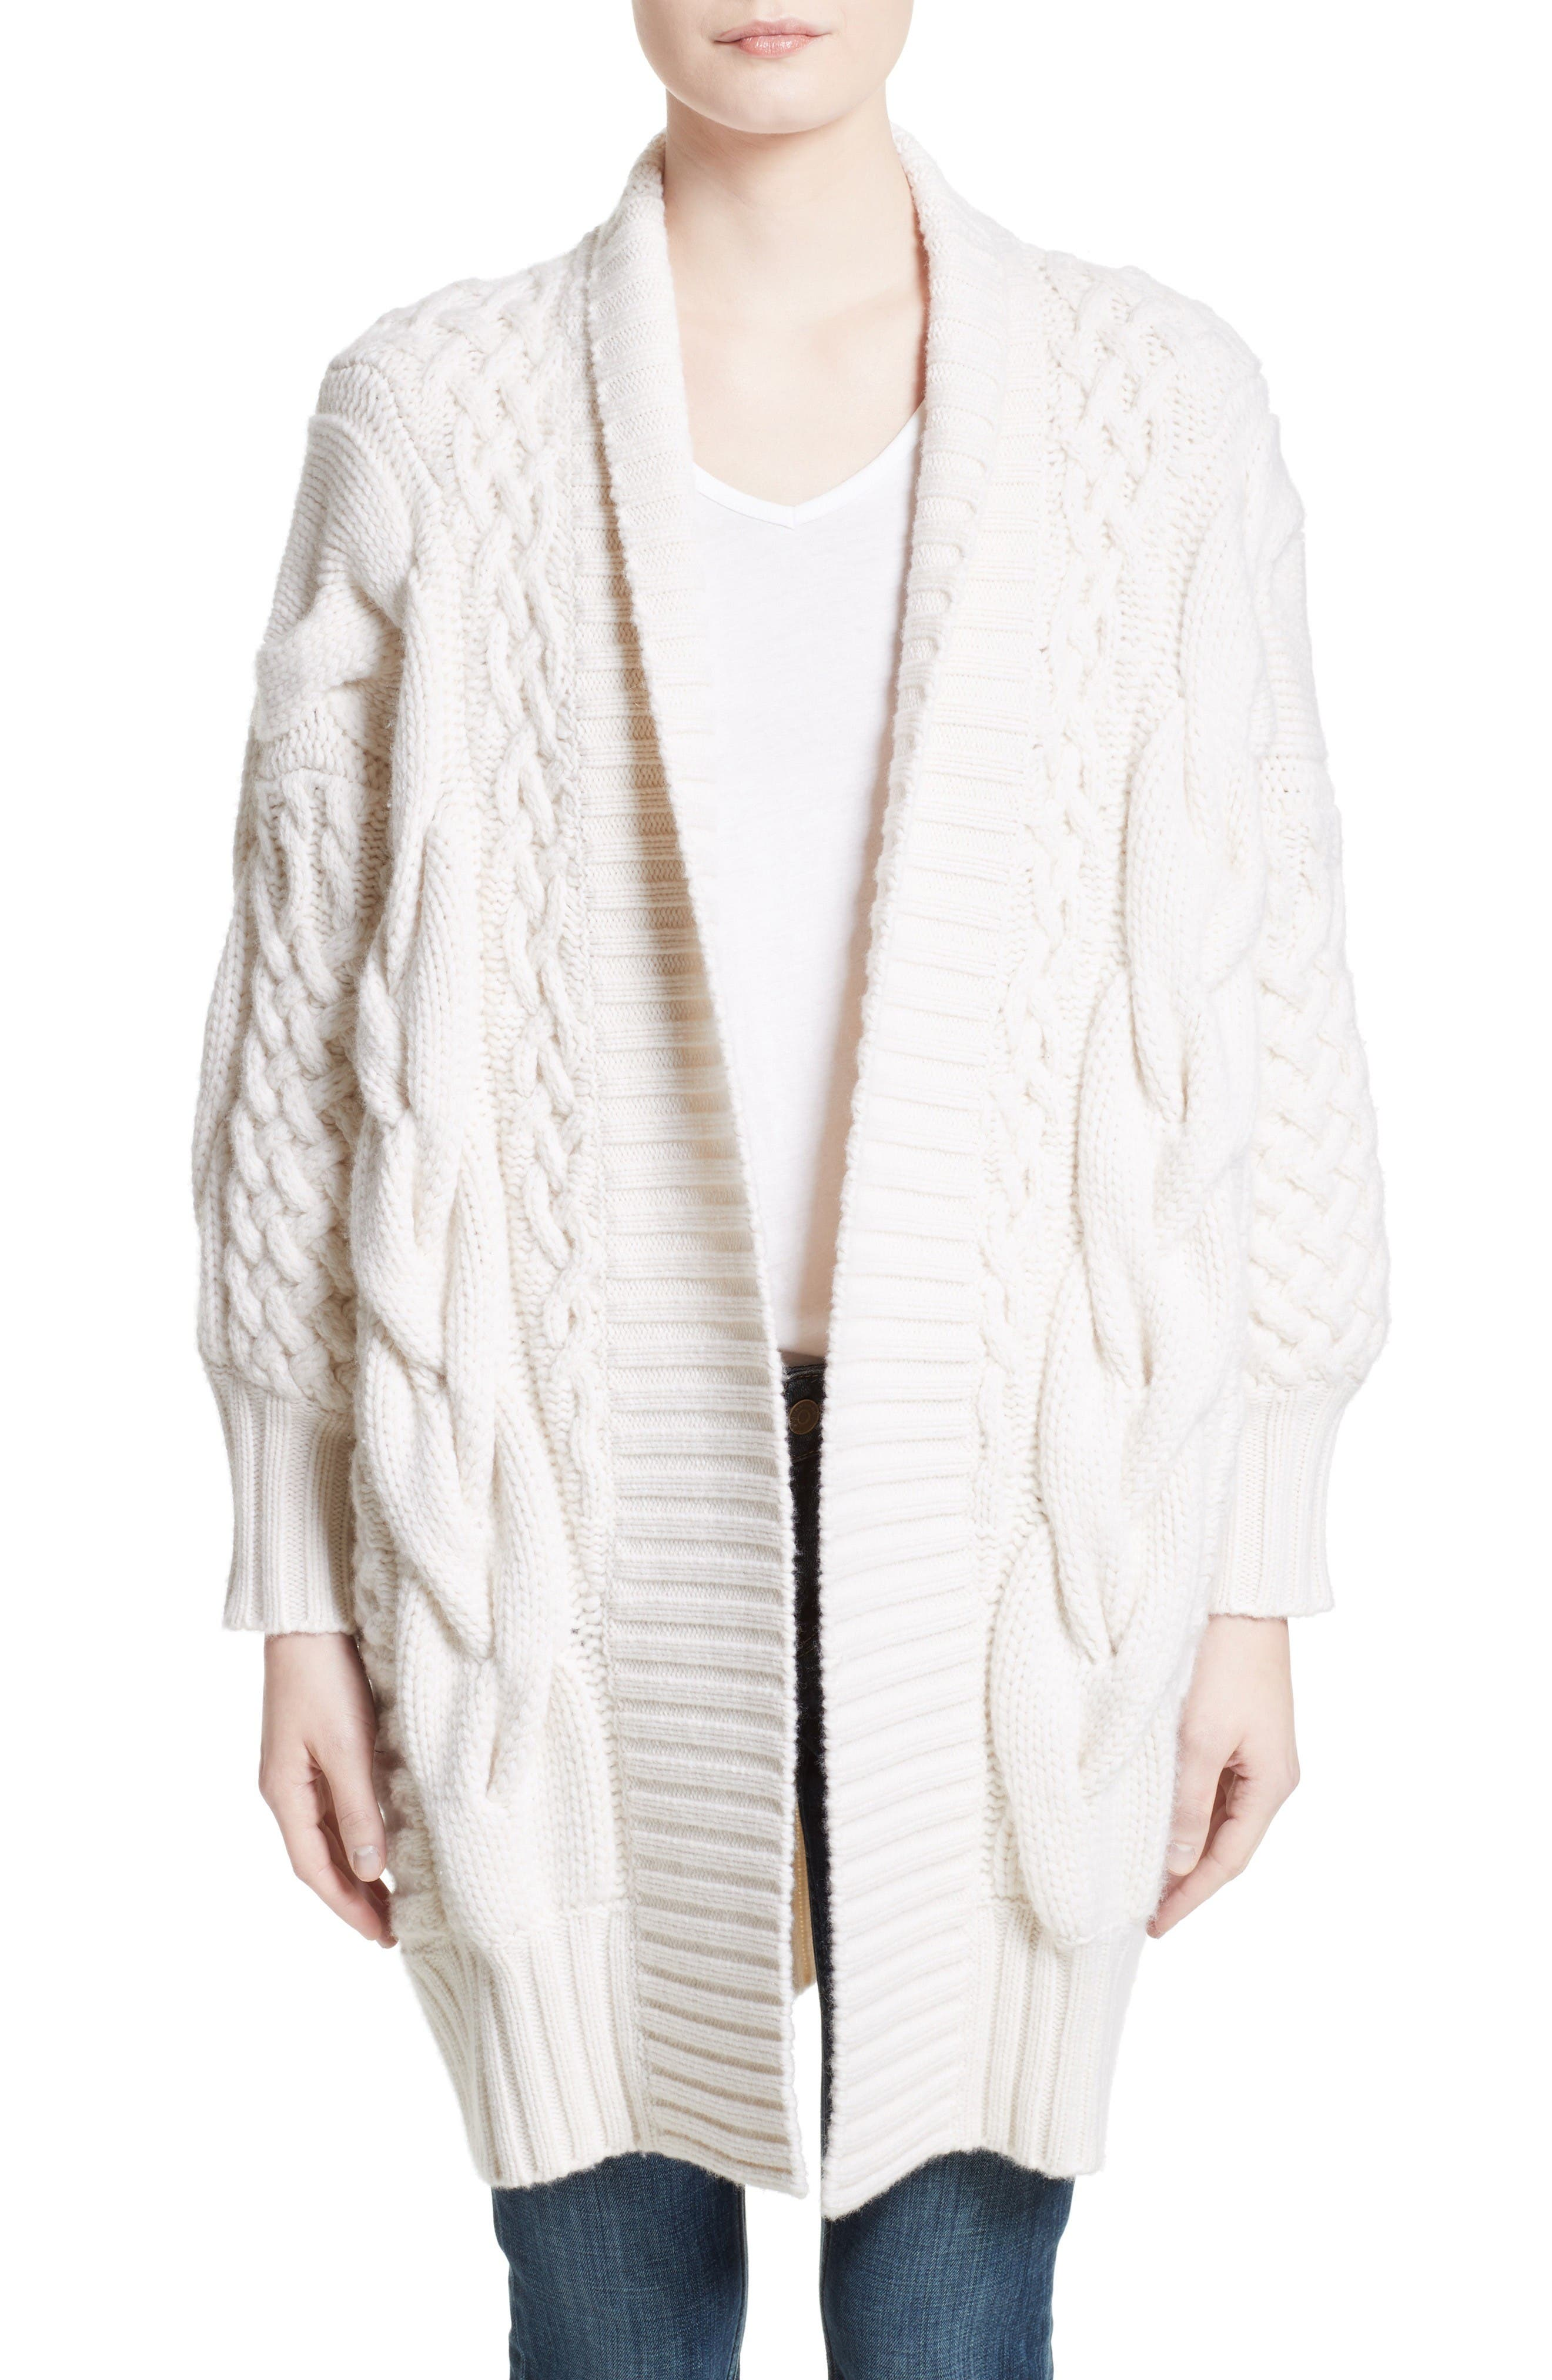 Burberry Camrosbrook Wool & Cashmere Open Cardigan